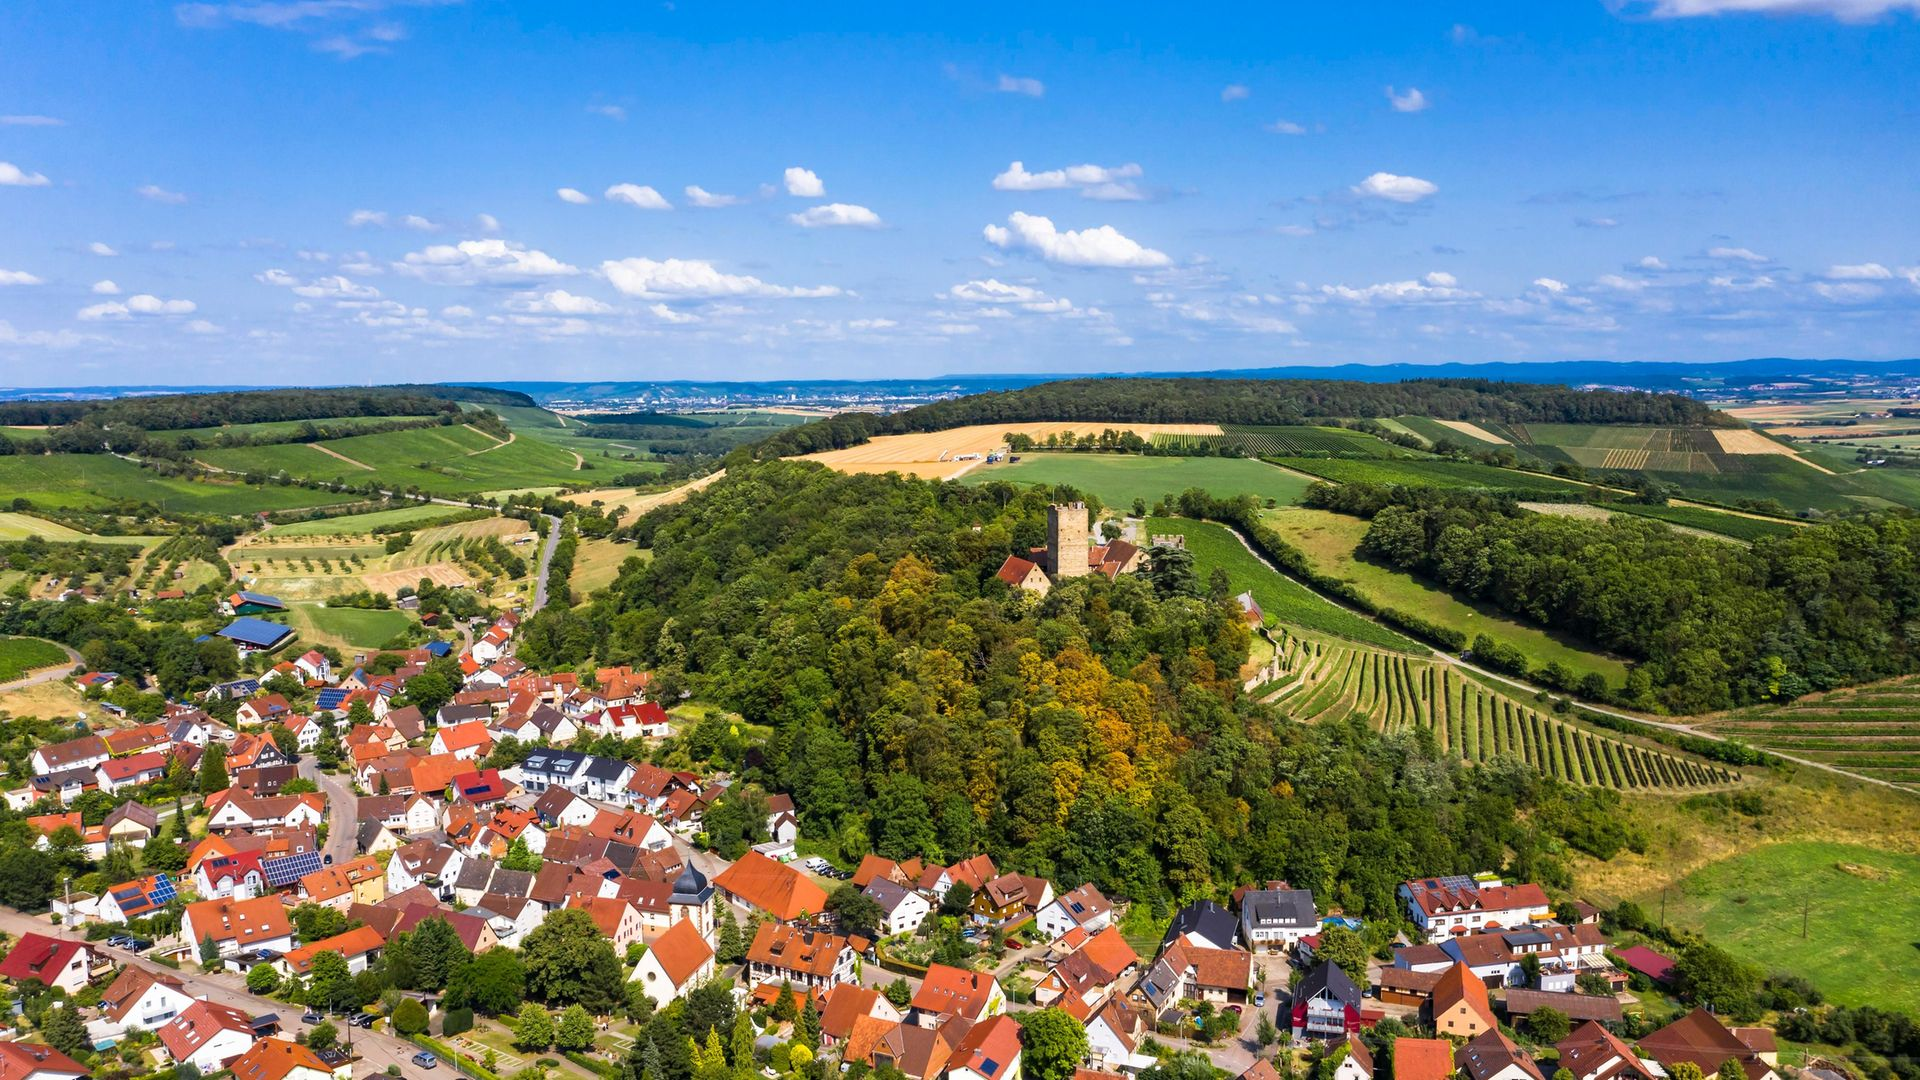 Neipperg, with its castle in the centre, close to the town of Heilbronn